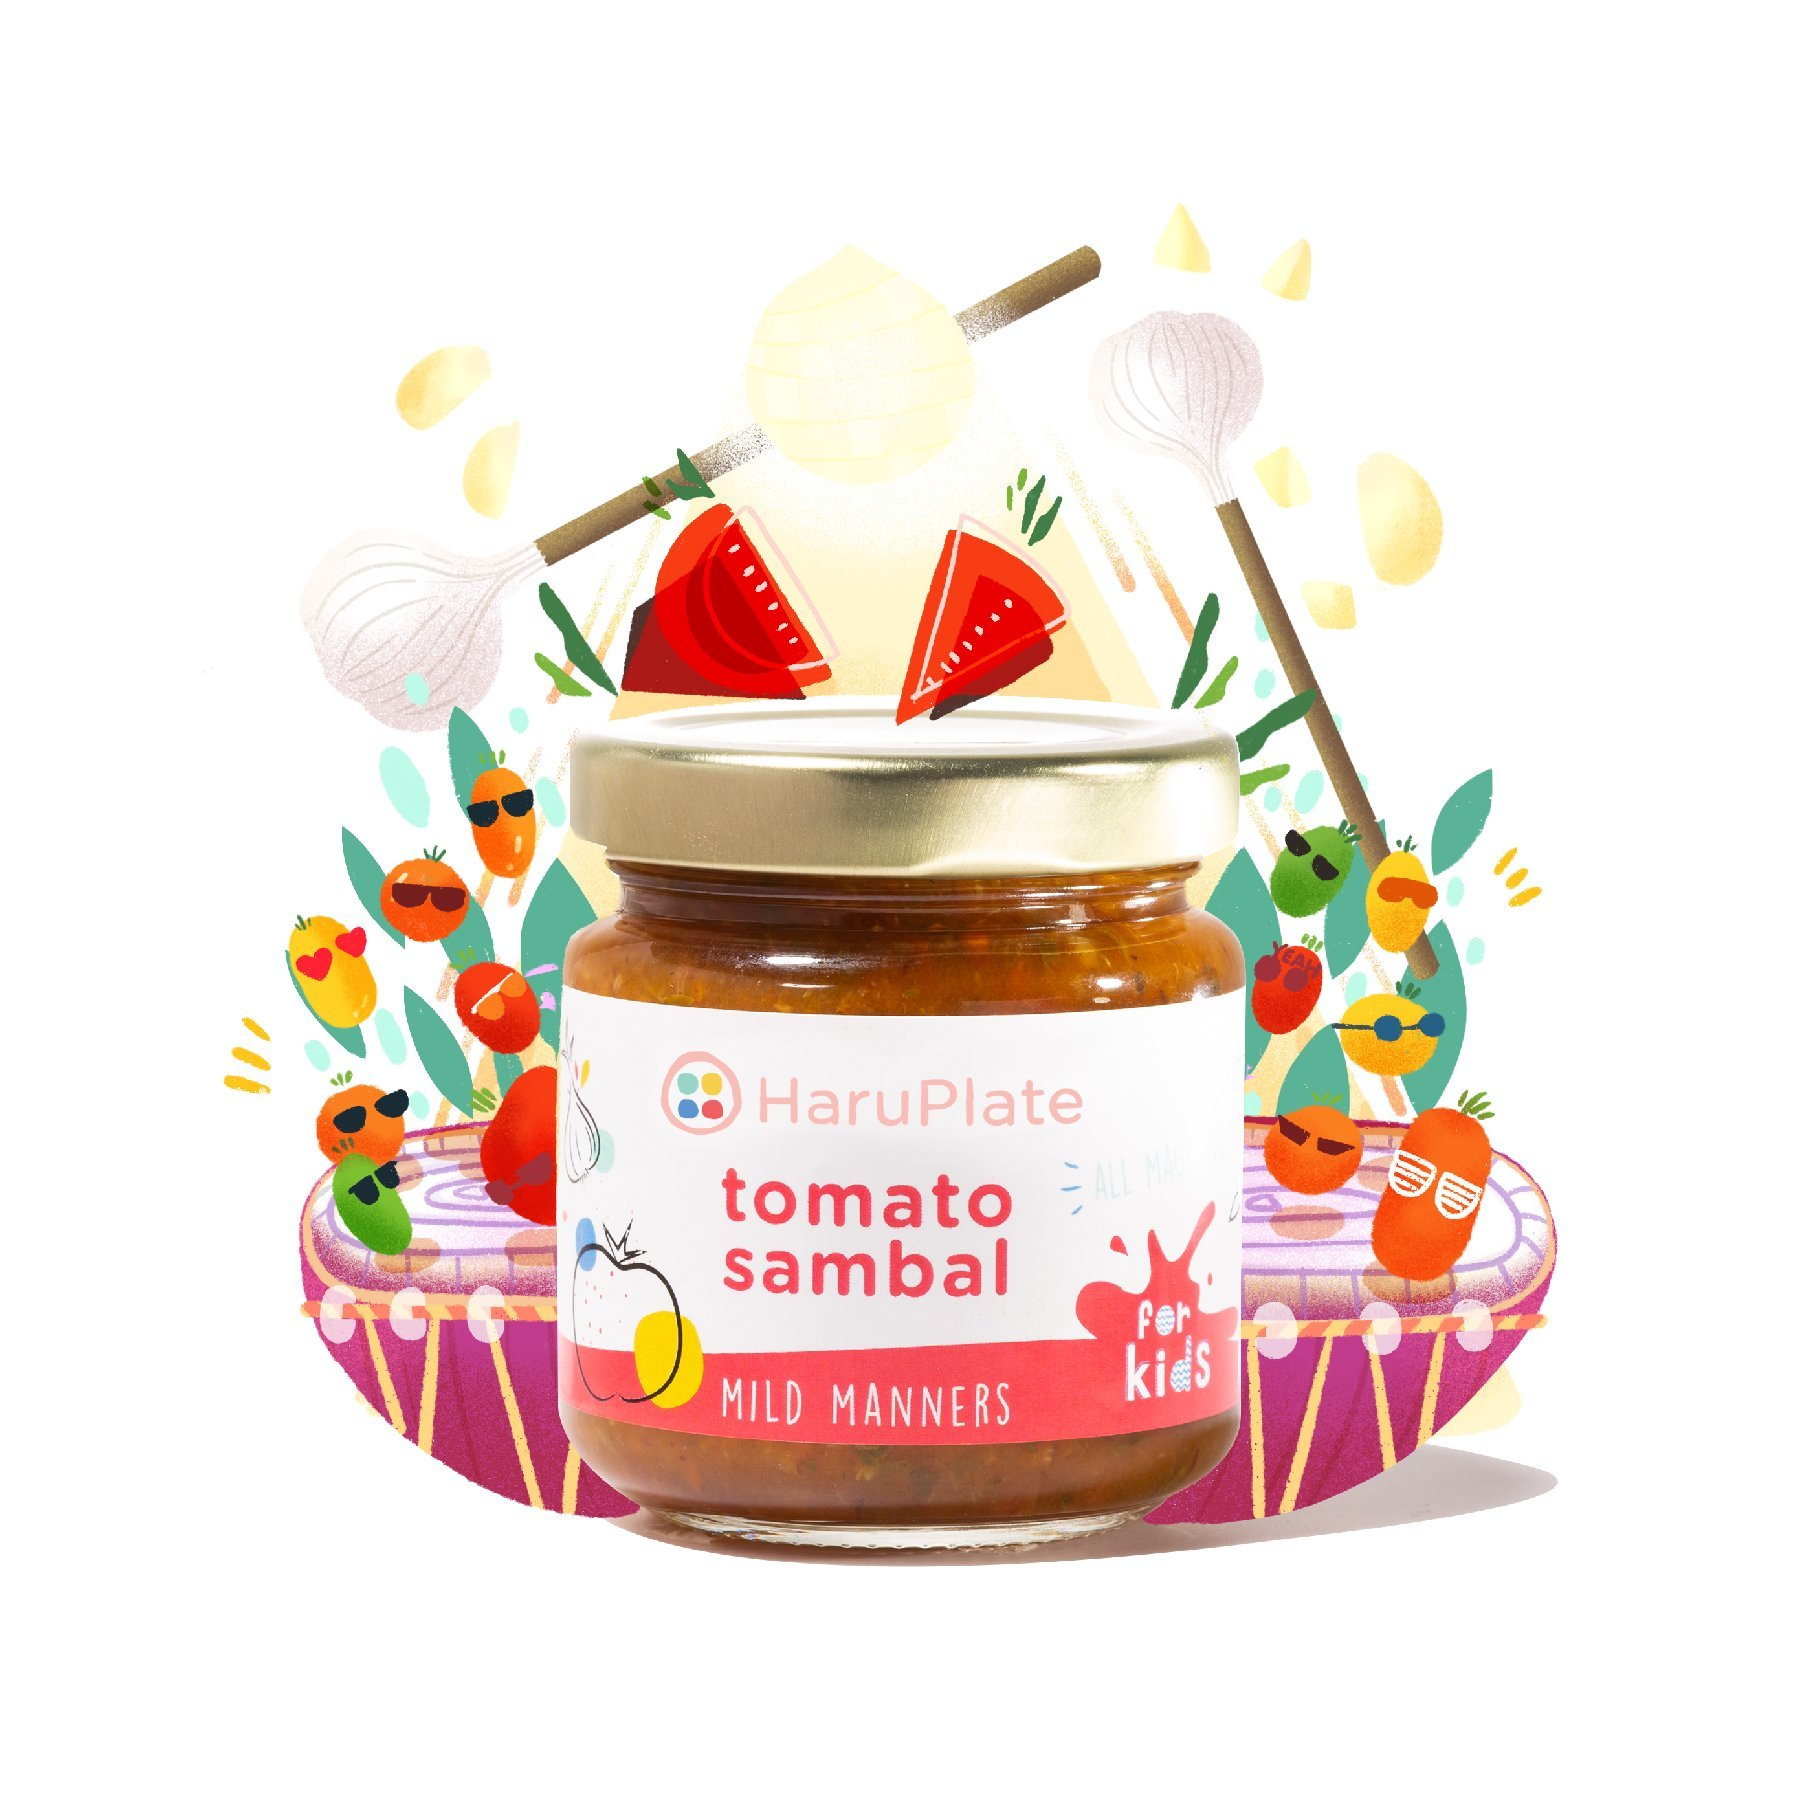 Mild Manners - Non-Spicy Tomato Sambal